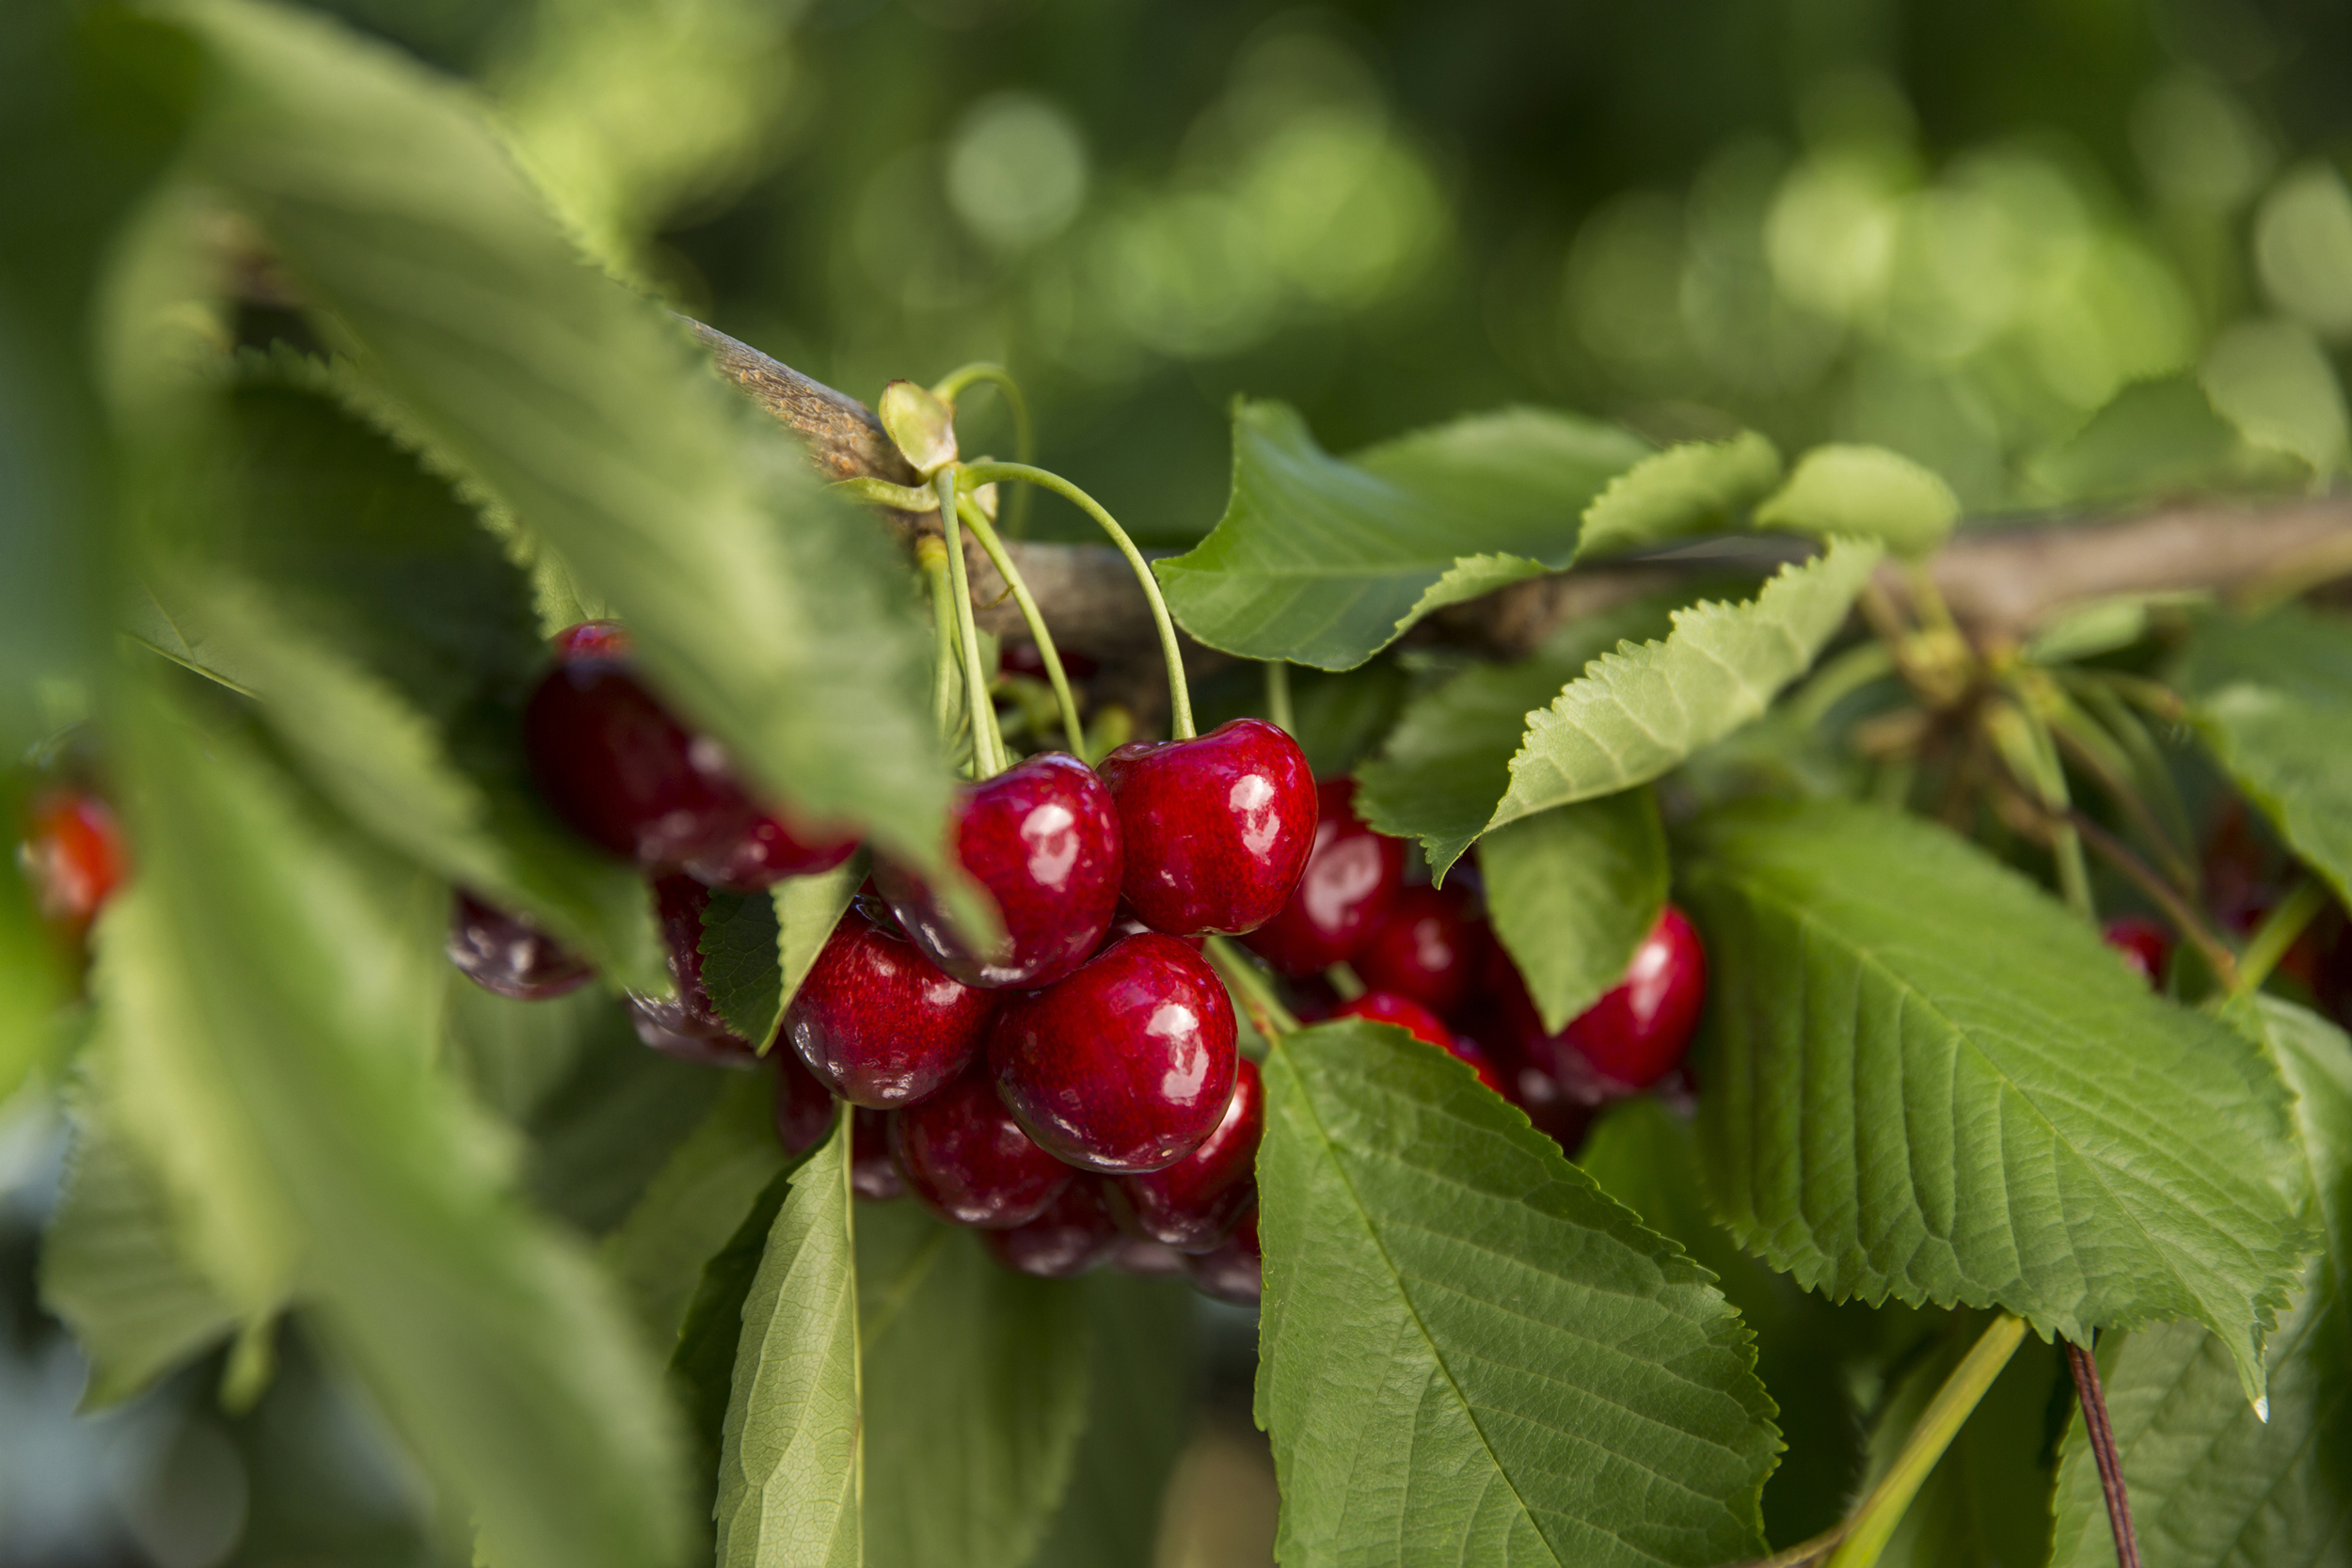 Cherries nearing harvest